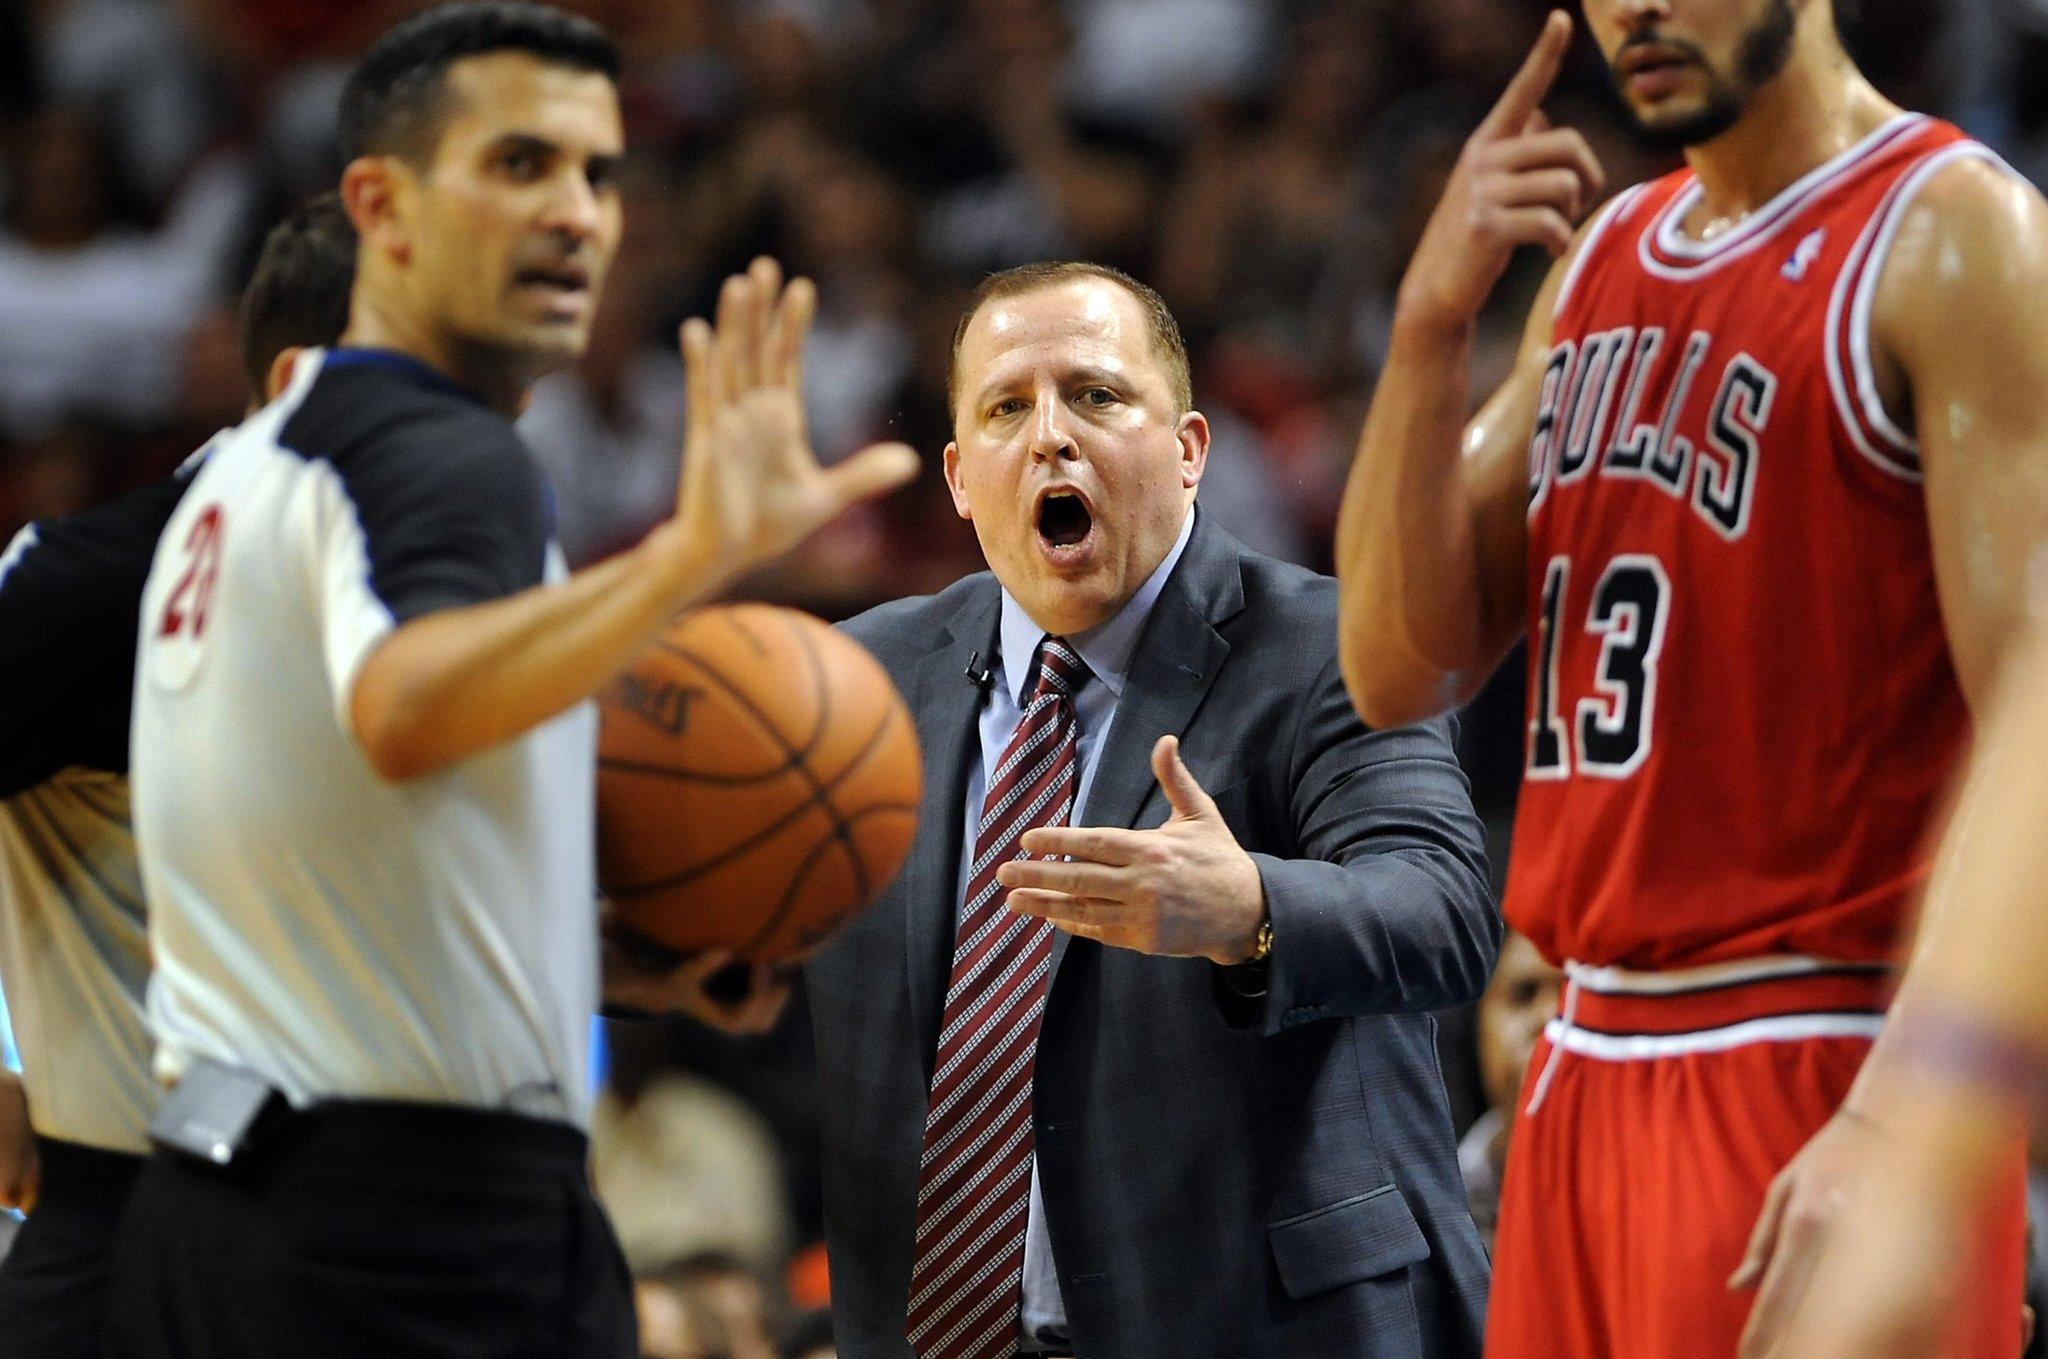 Bulls head coach Tom Thibodeau yells out at officials late in the second quarter against the Heat.